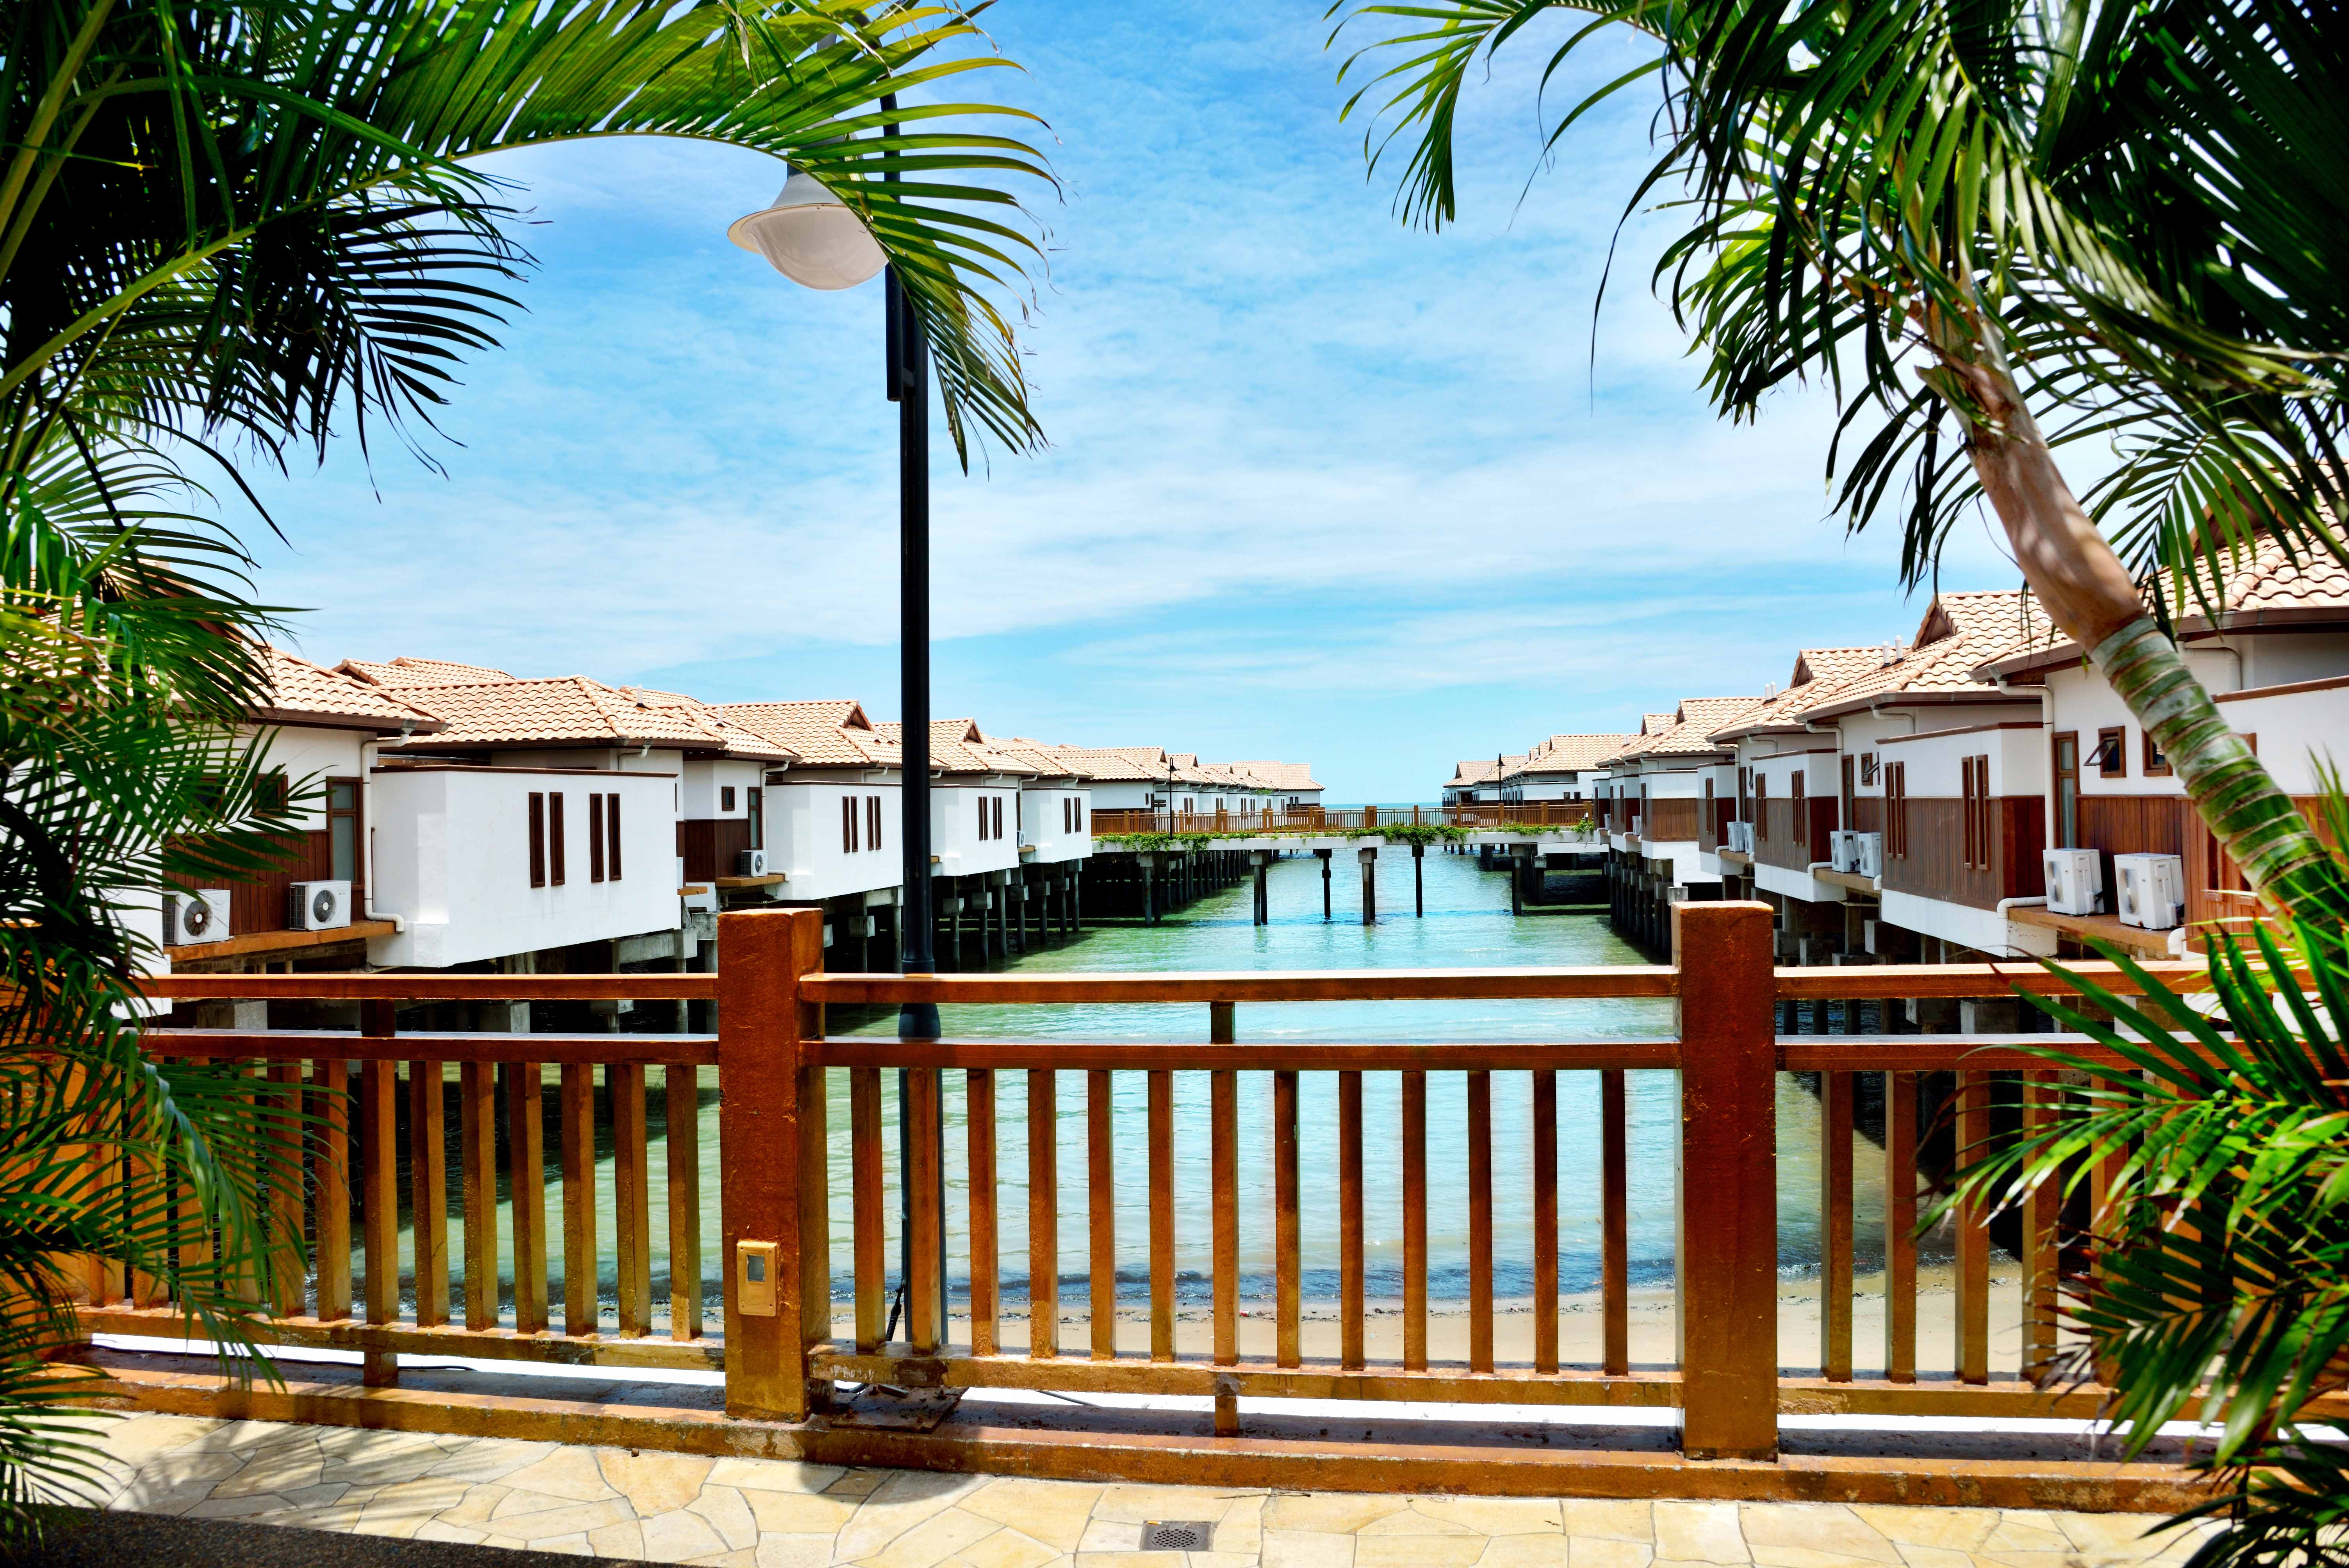 Villa View at Grand Lexis Port Dickson